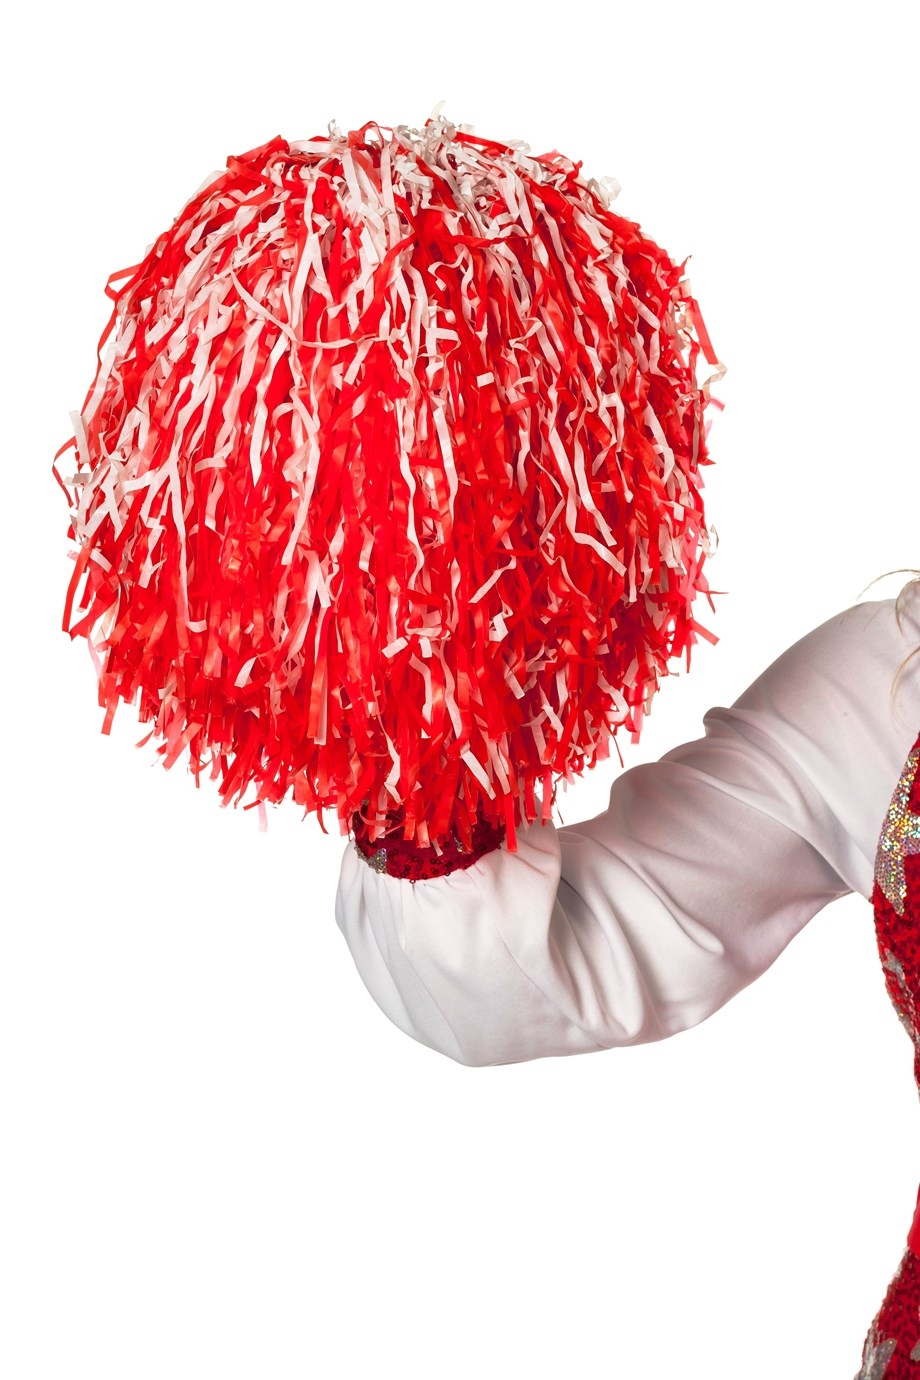 "Cheerleader pompon "" Rood/wit """